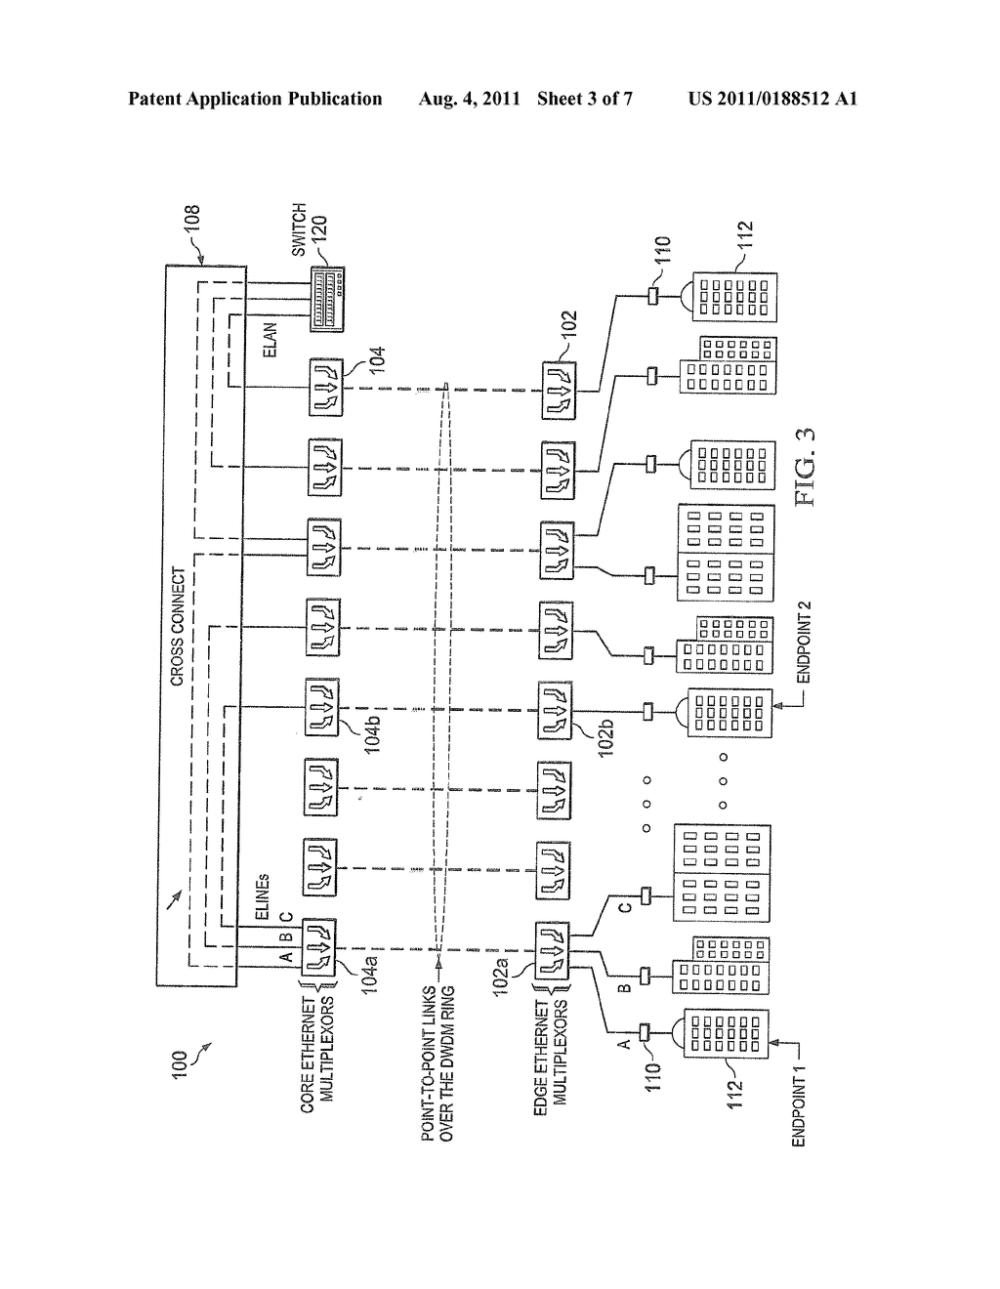 medium resolution of cross connect using ethernet multiplexors for a simple metro ethernet network diagram schematic and image 04